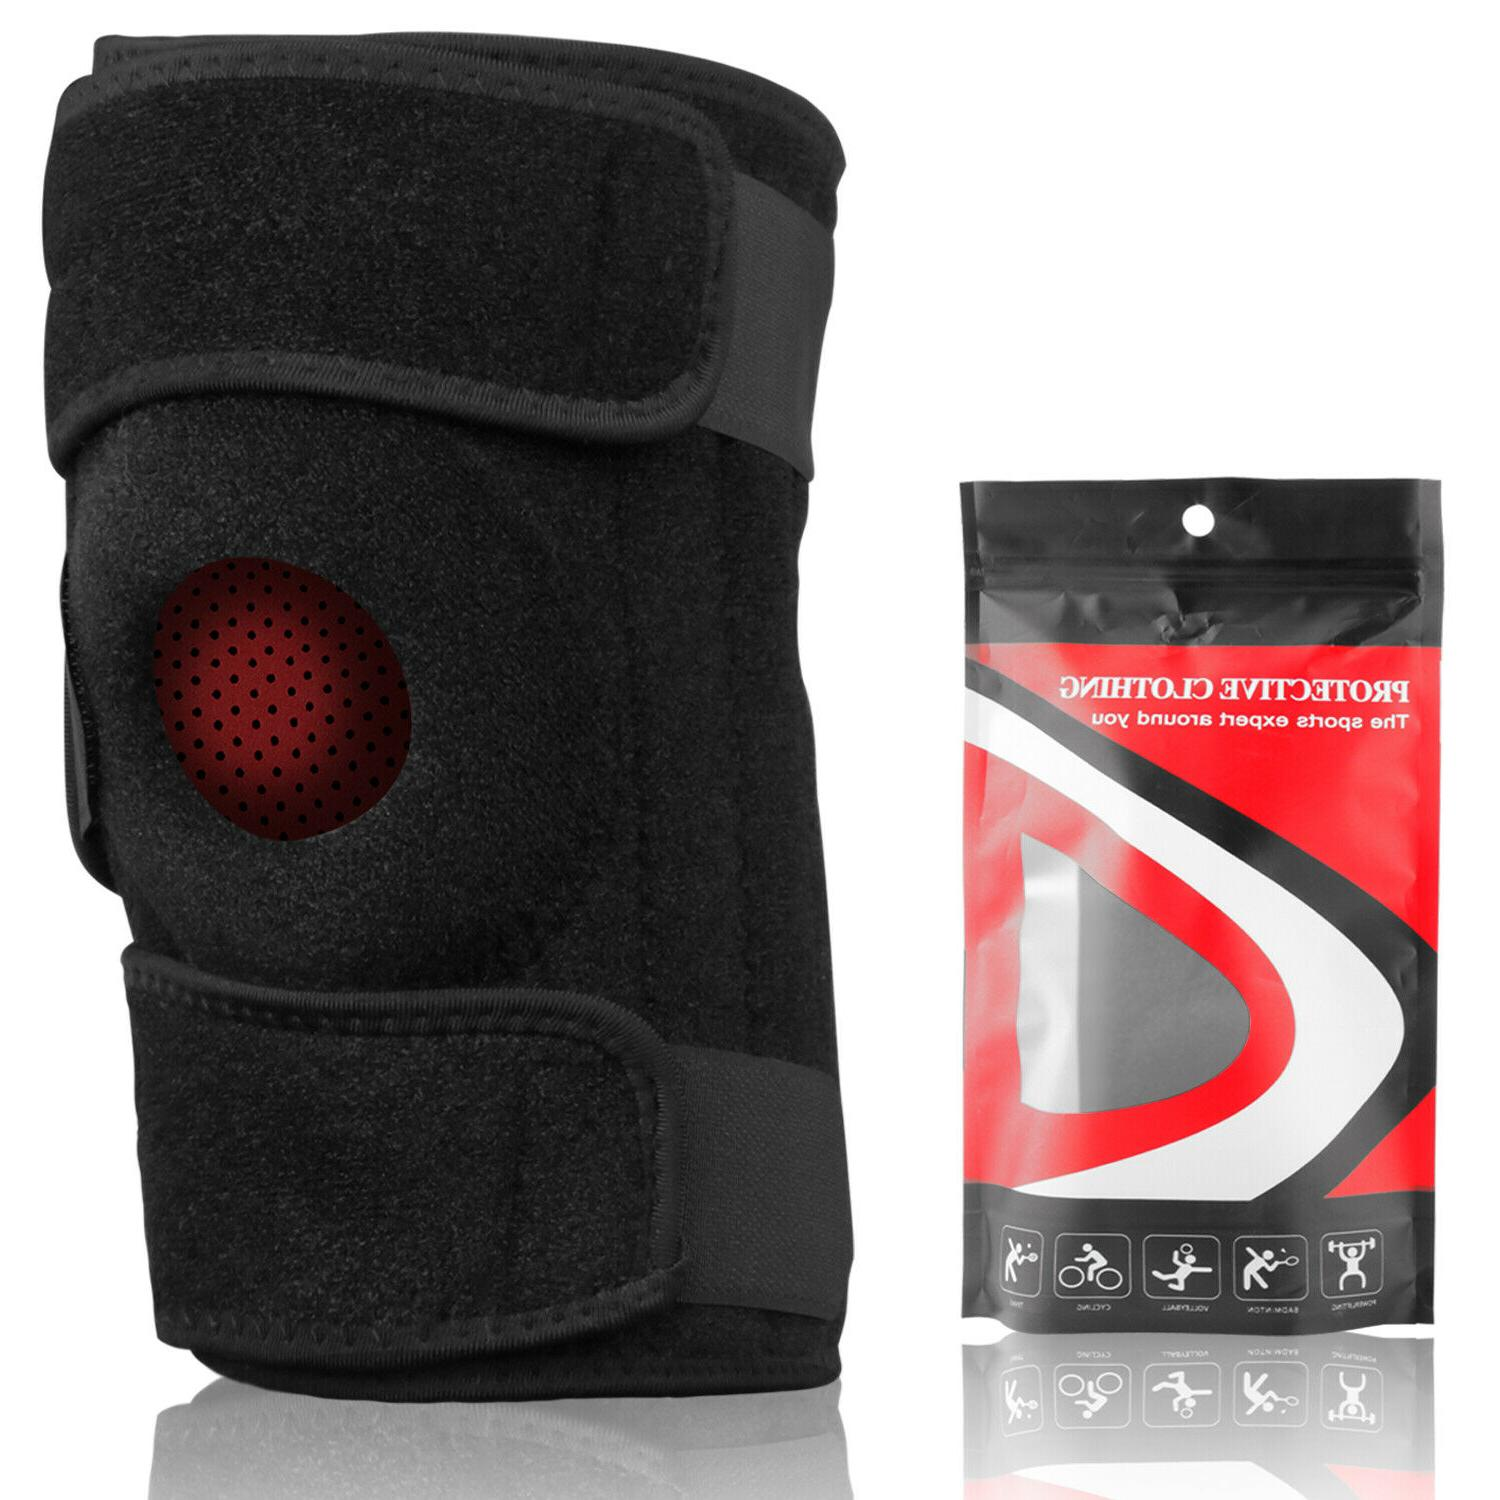 Knee Sleeve Leg Wrap Stabilizer For Arthritis Pain/Running/Gym